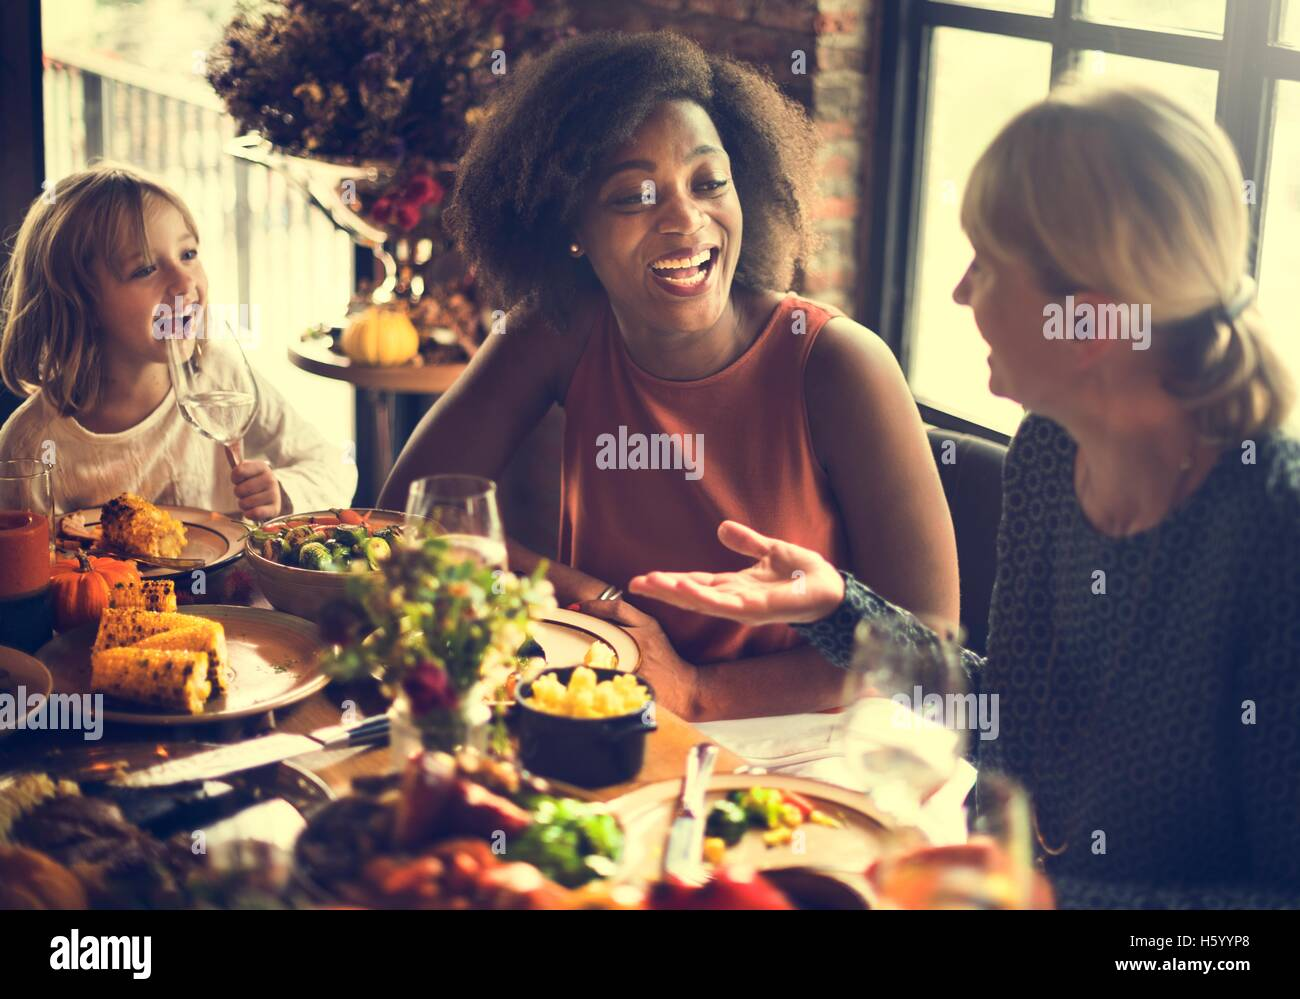 Thanksgiving Celebration Tradition Family Dinner Concept - Stock Image